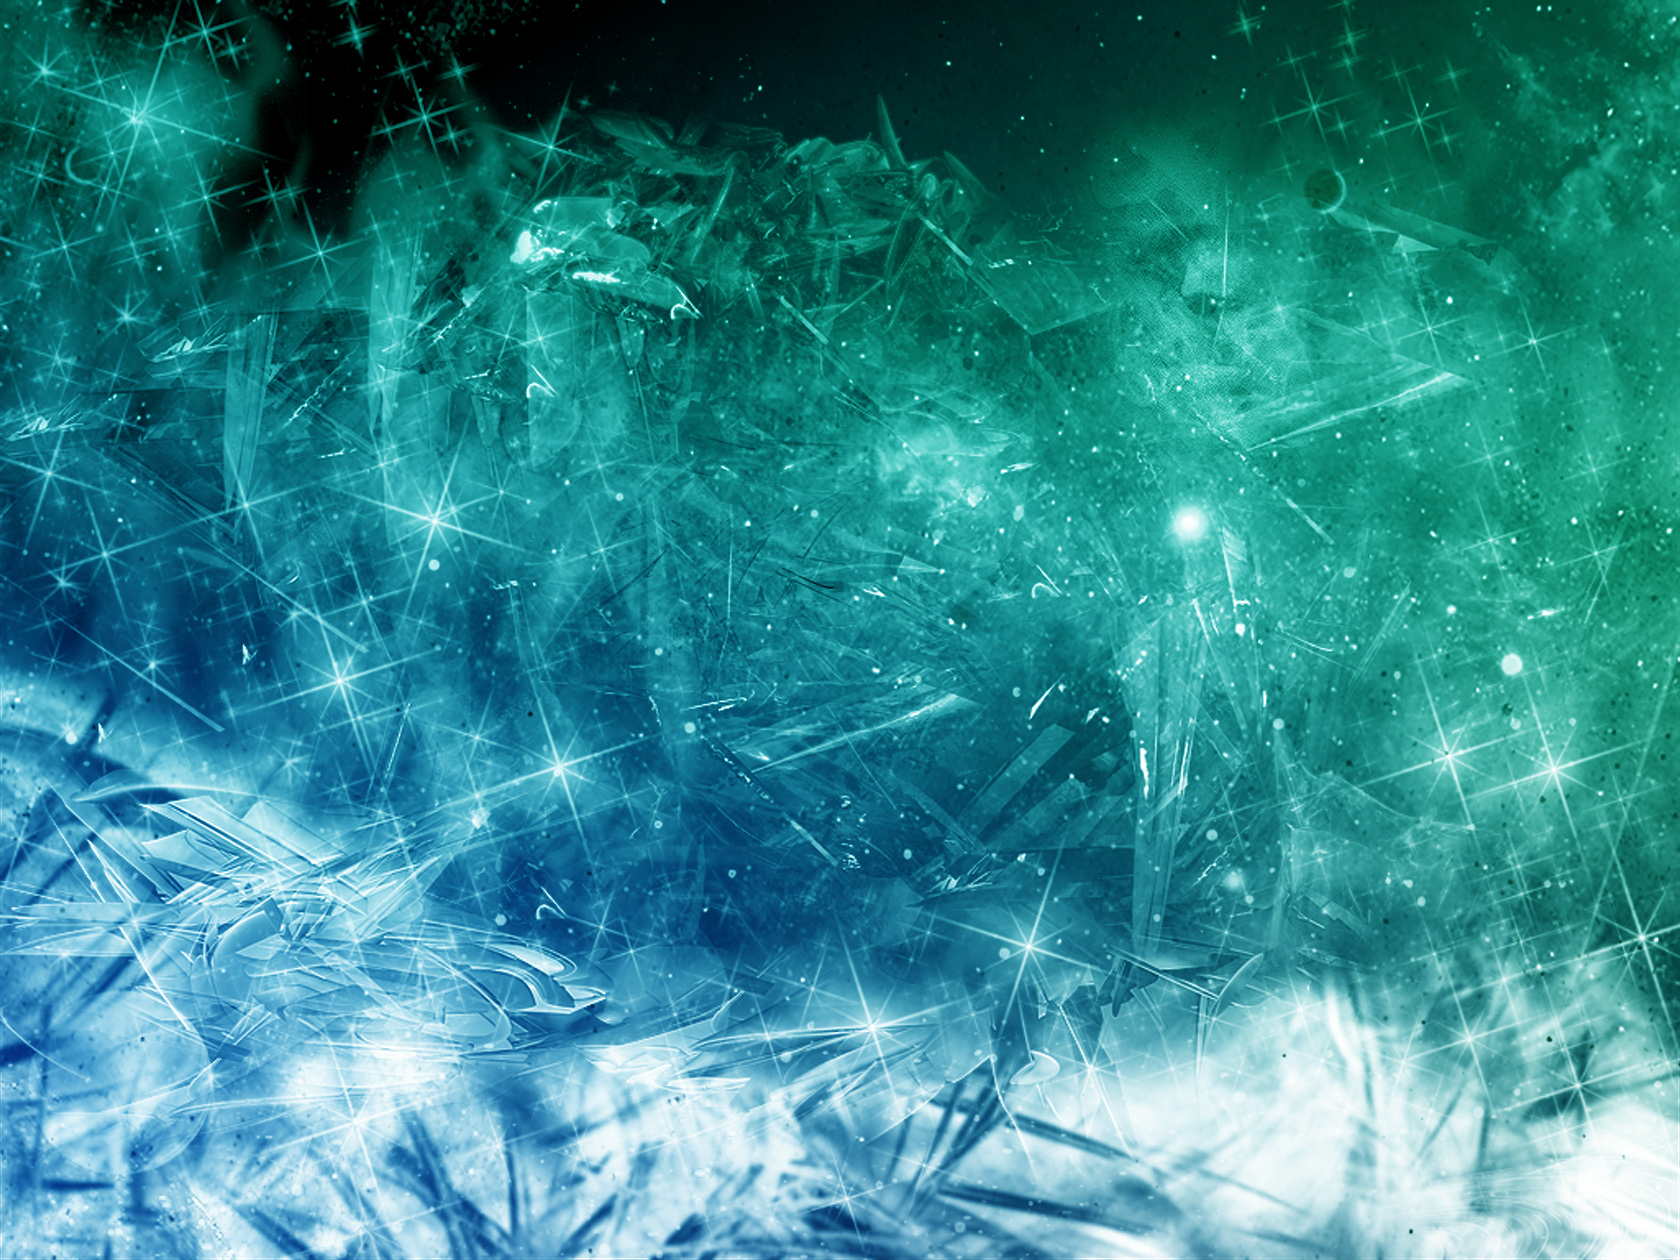 Green Blue Ice Wallpaper 1680x1260